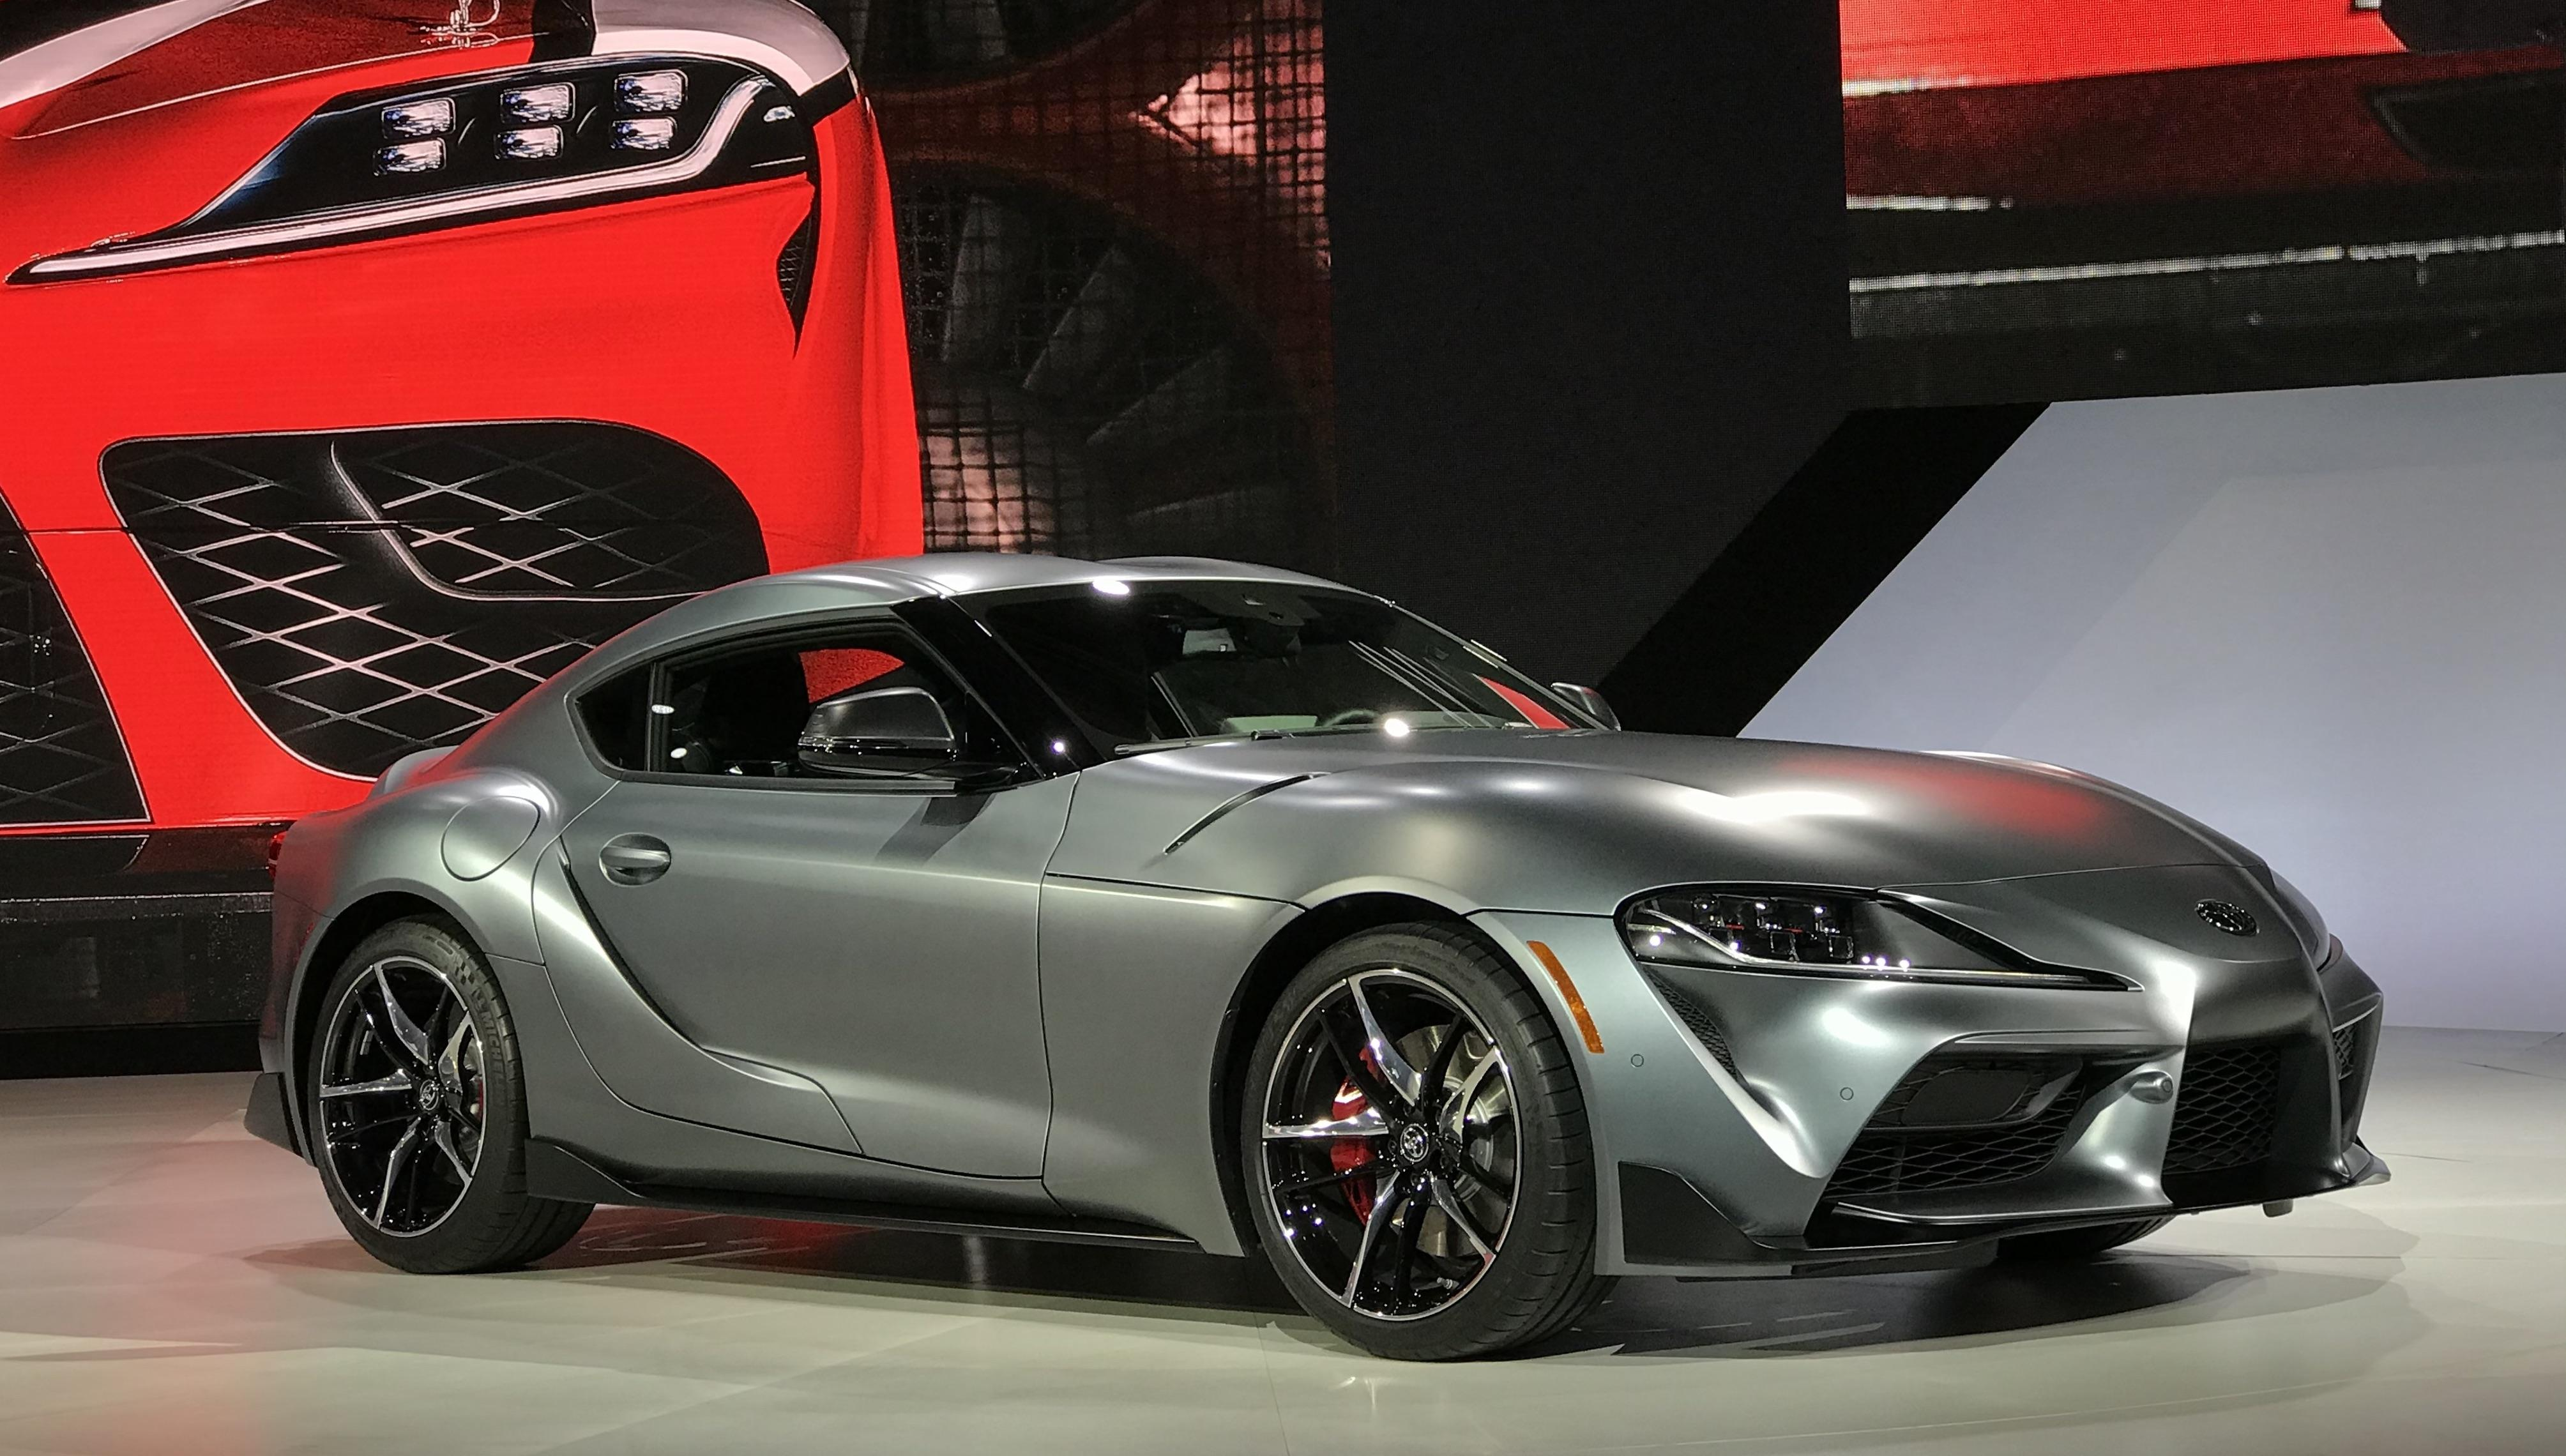 JNC NEWS: This is the production 2020 Toyota Supra